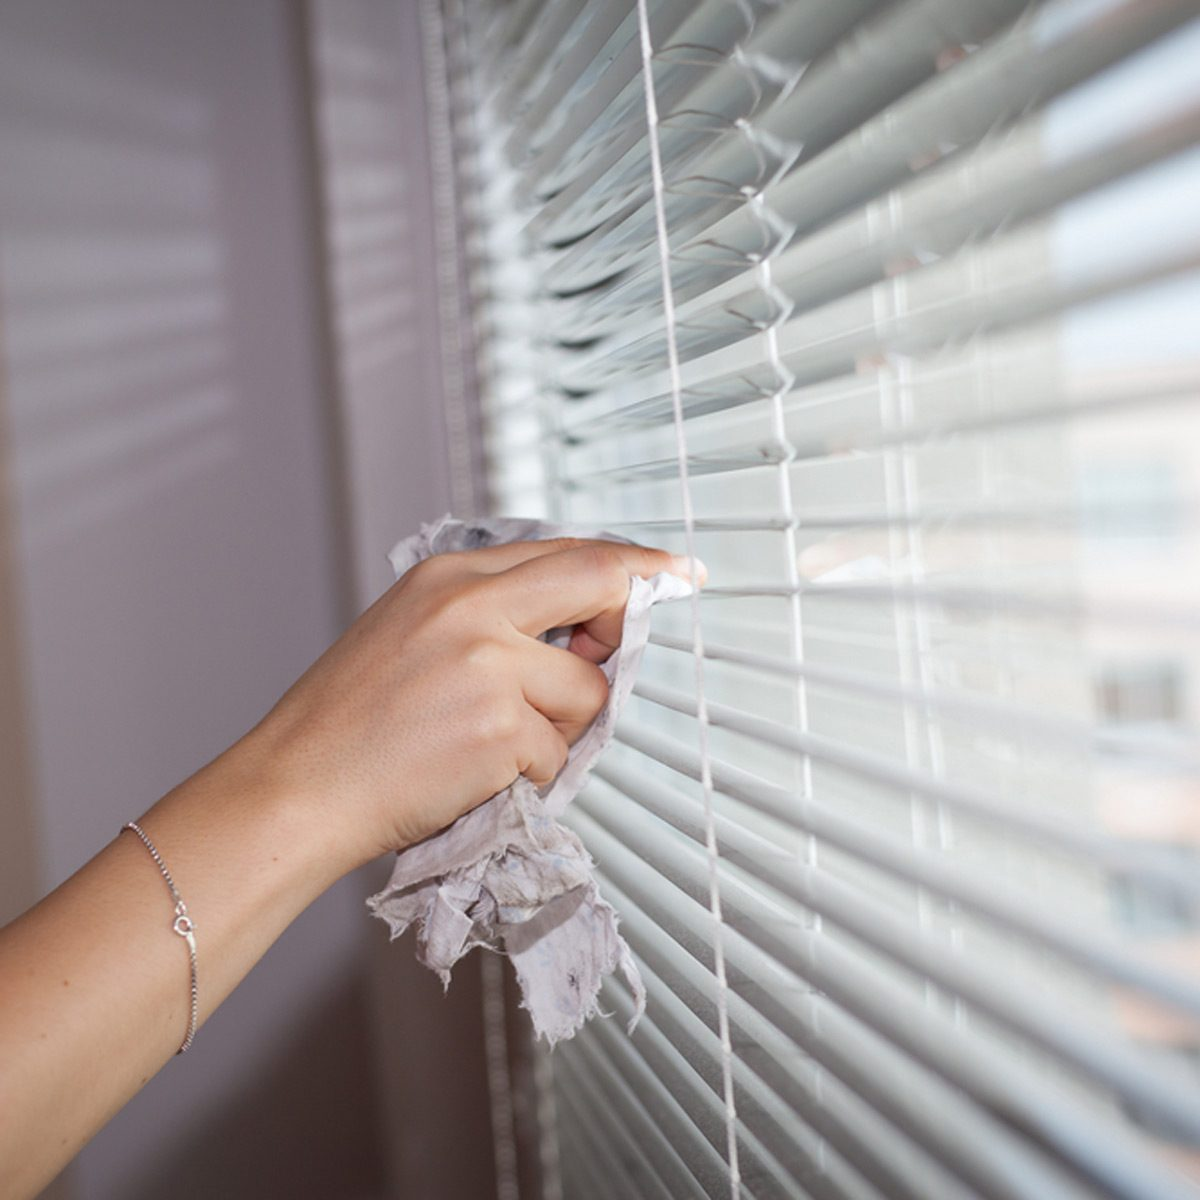 cleanblinds_505996420 clean and dust the window blinds